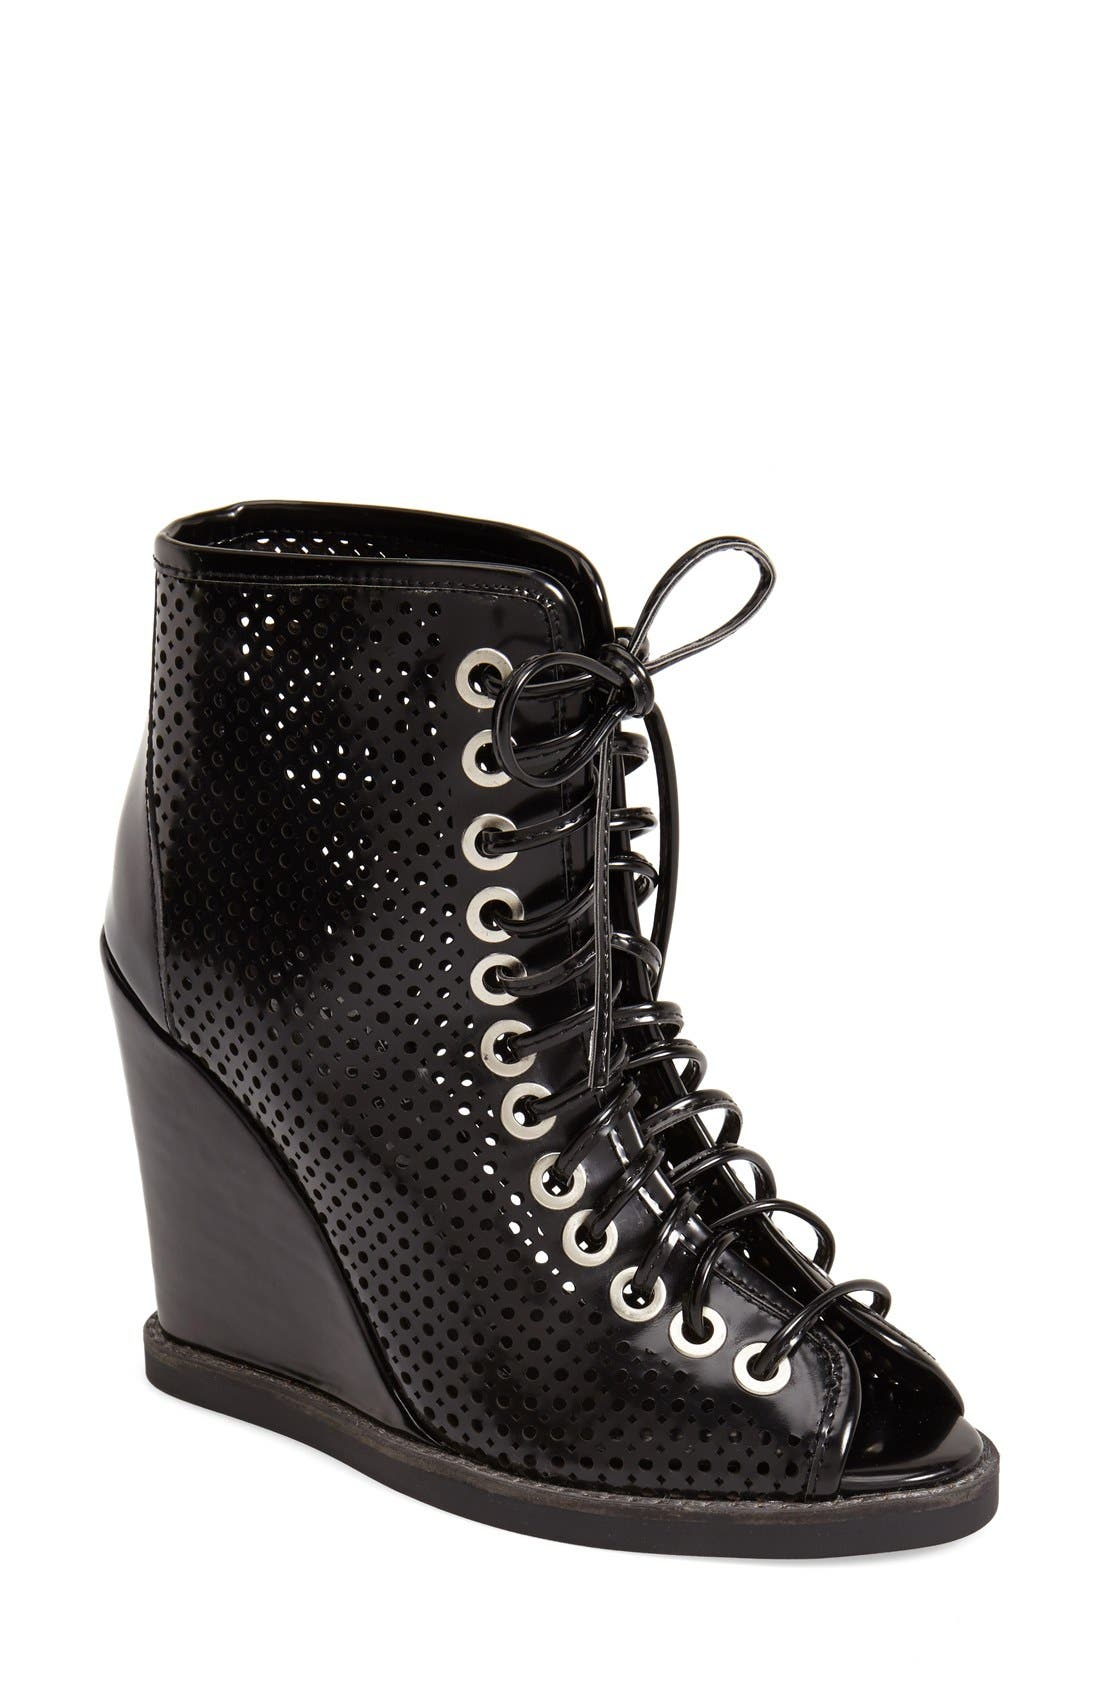 Alternate Image 1 Selected - Jeffrey Campbell 'Adelicia' Ankle Boot (Women)